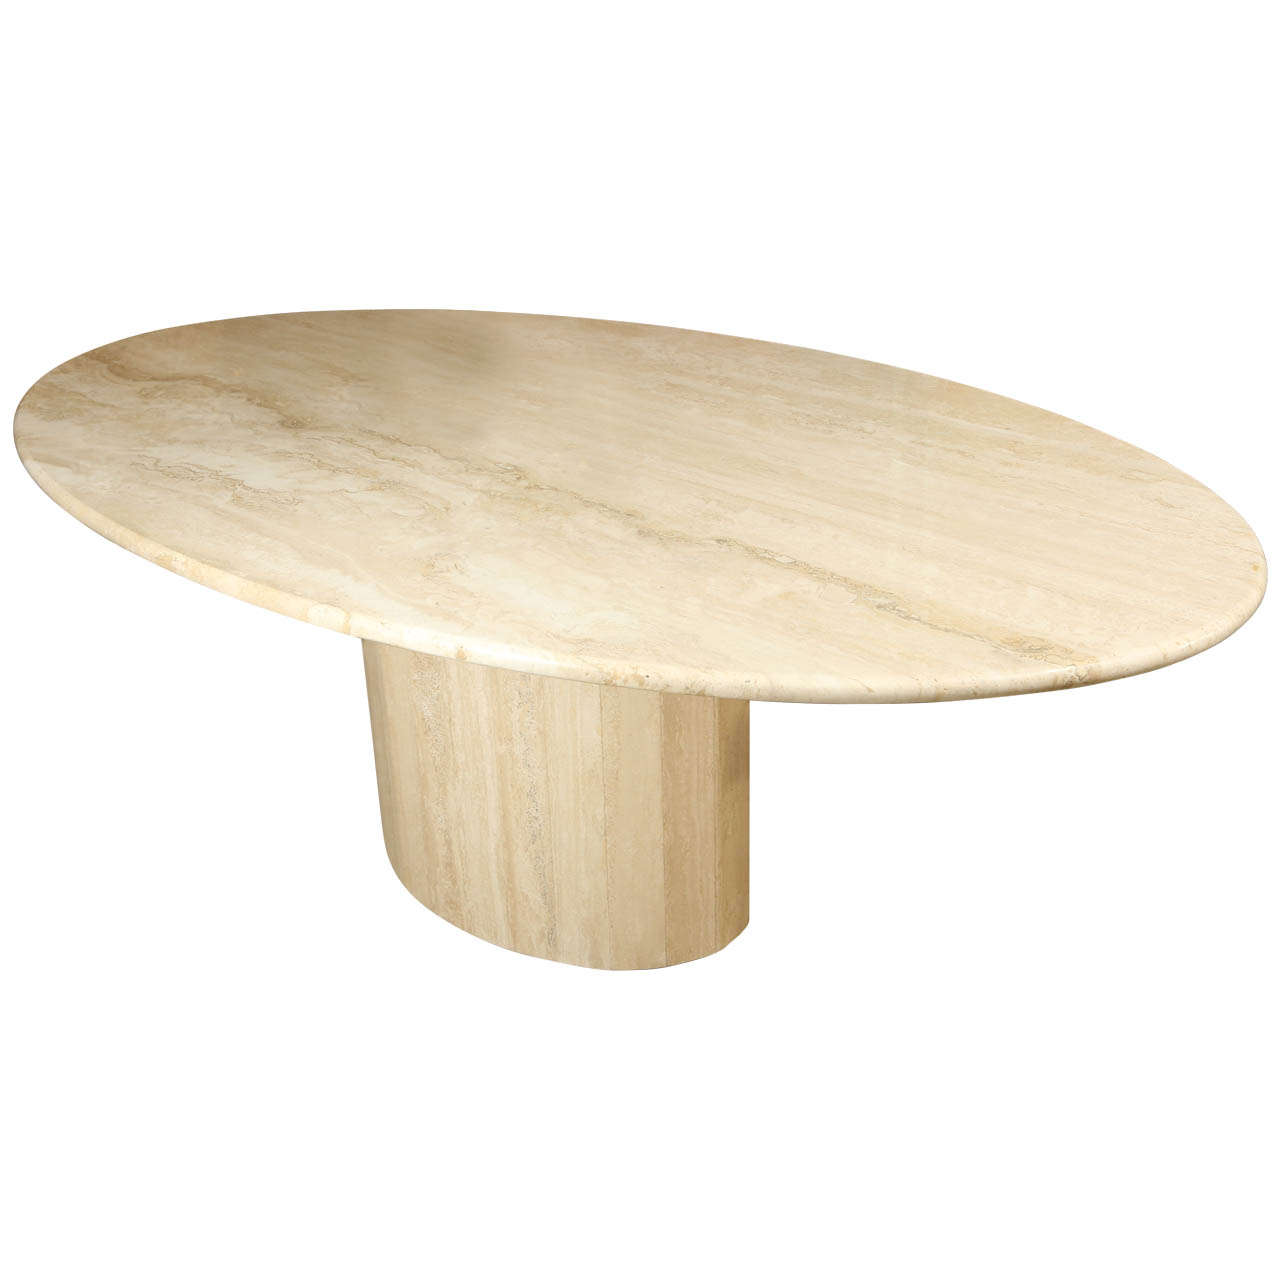 Classic Oval Polished Travertine Dining Table at 1stdibs : X from 1stdibs.com size 1280 x 1280 jpeg 53kB